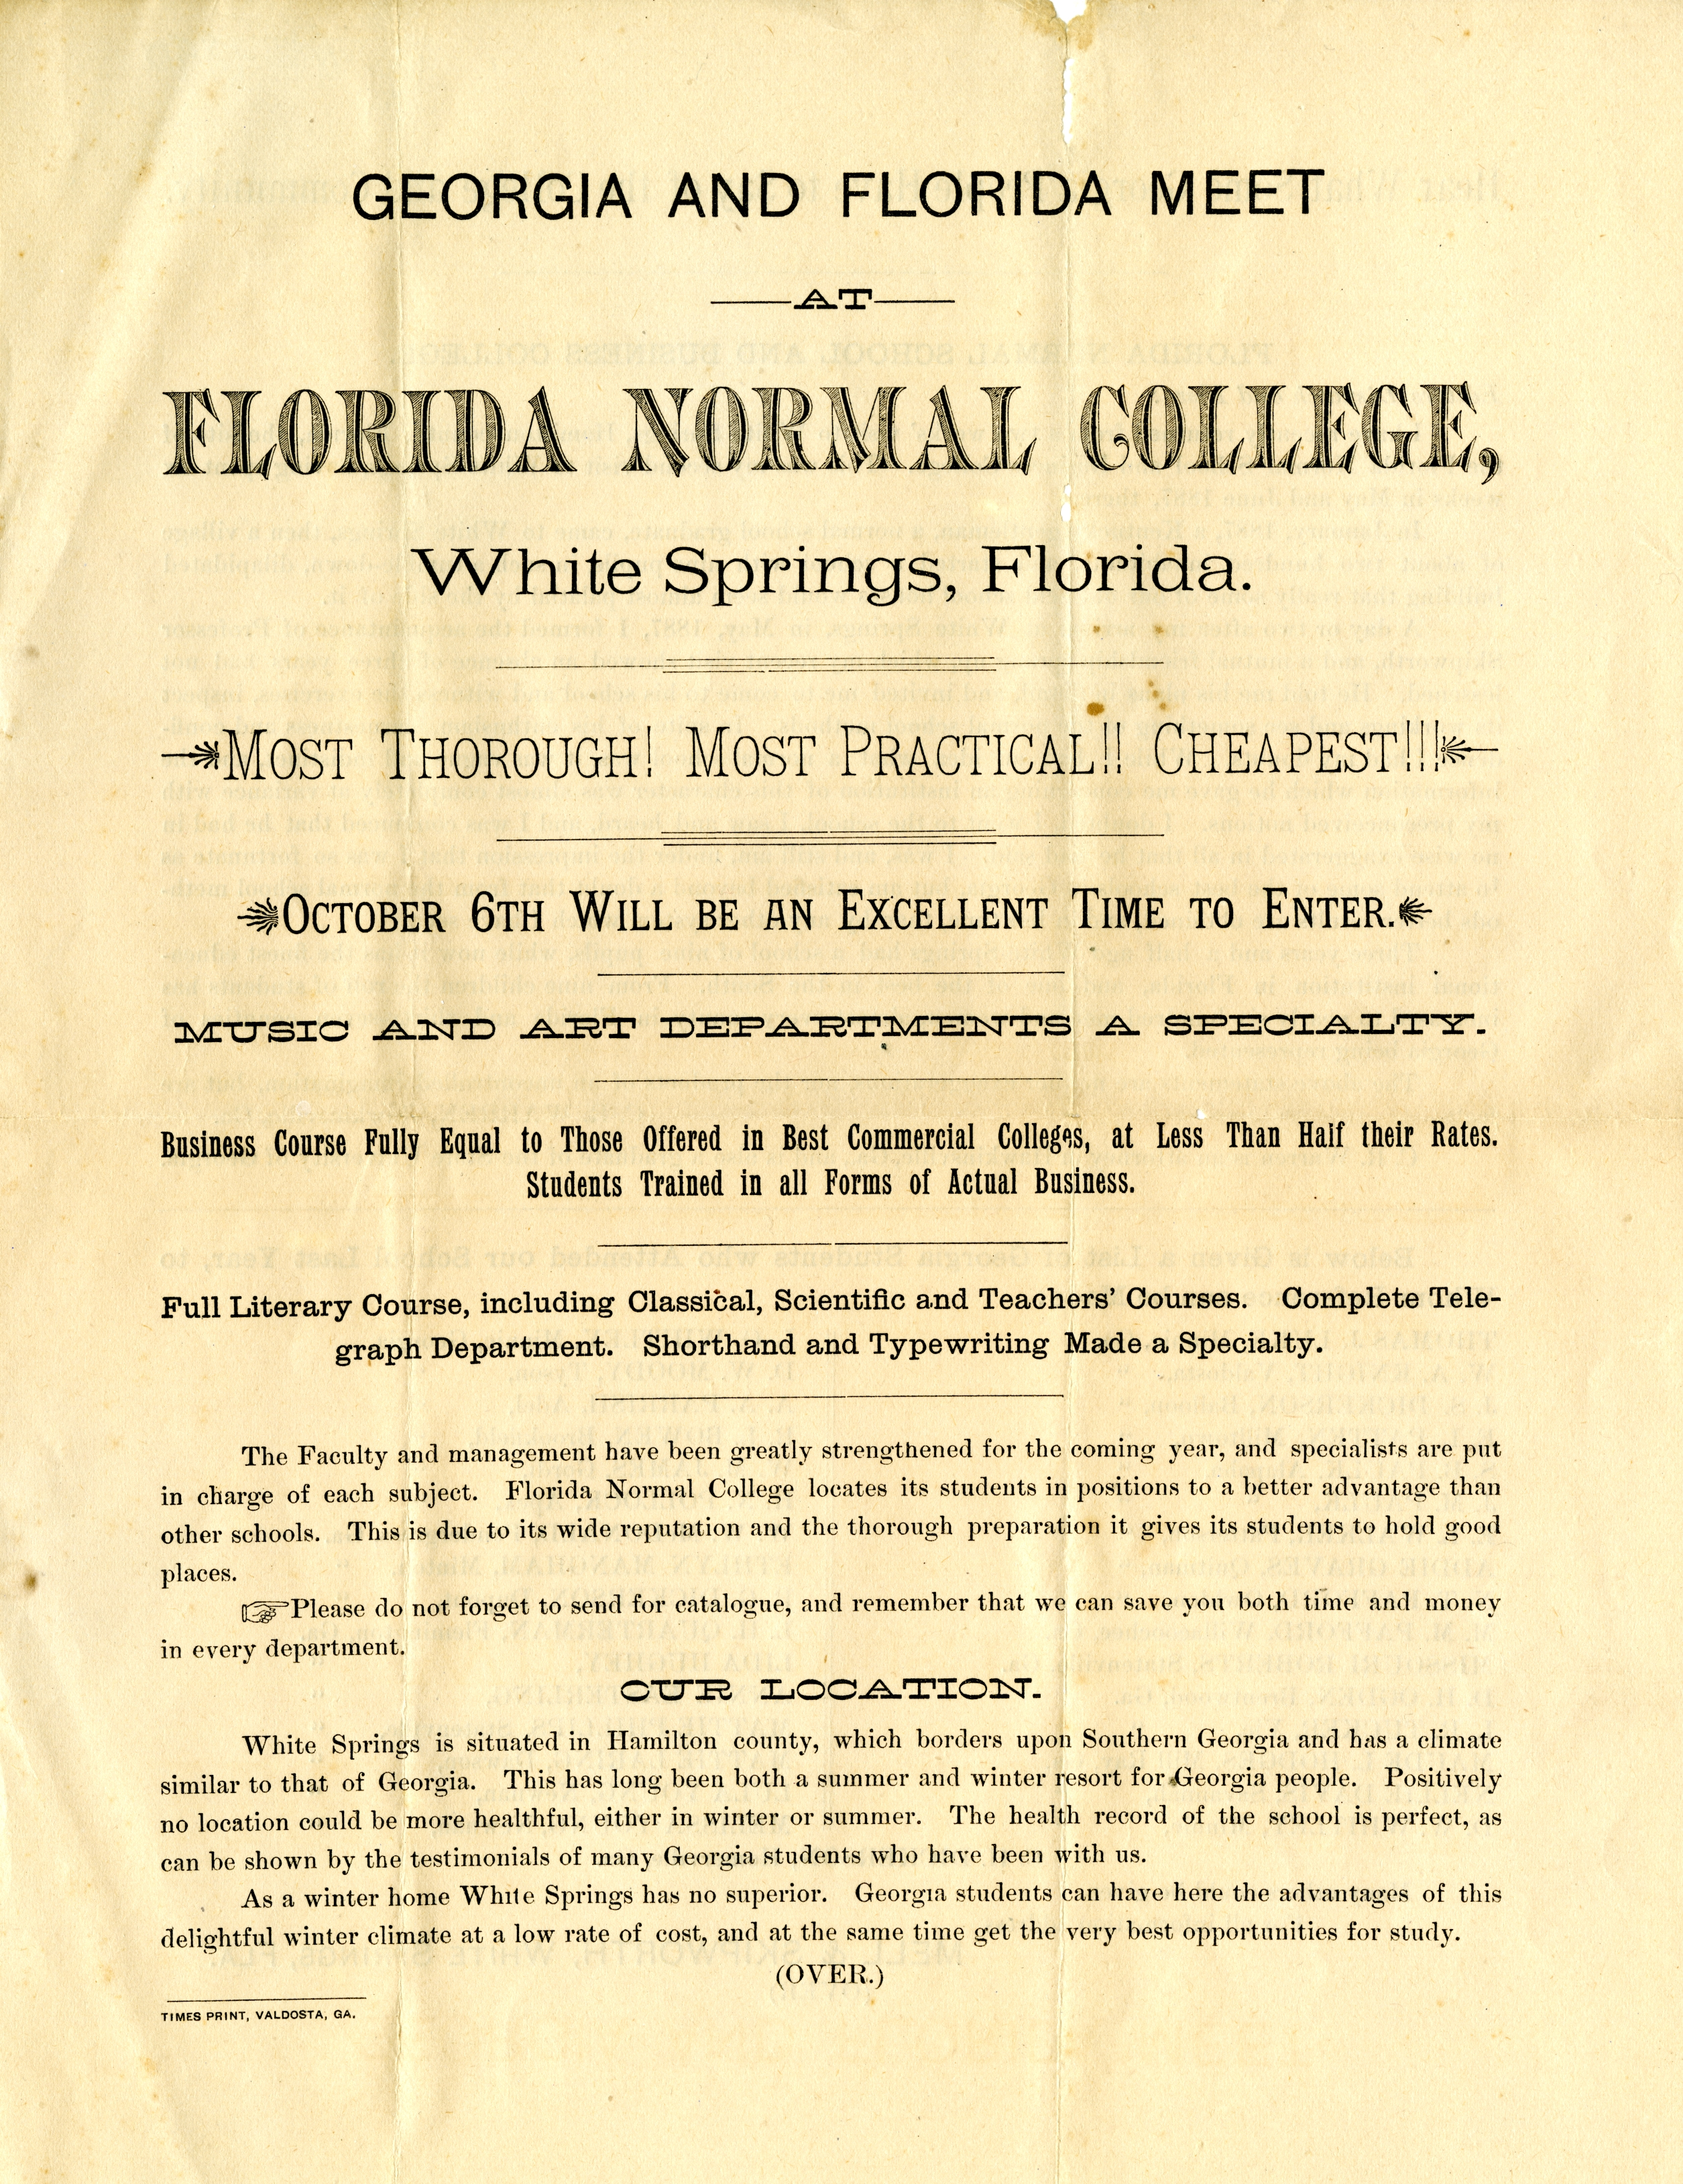 Georgia and Florida meet at Florida Normal College, White Springs, Florida.